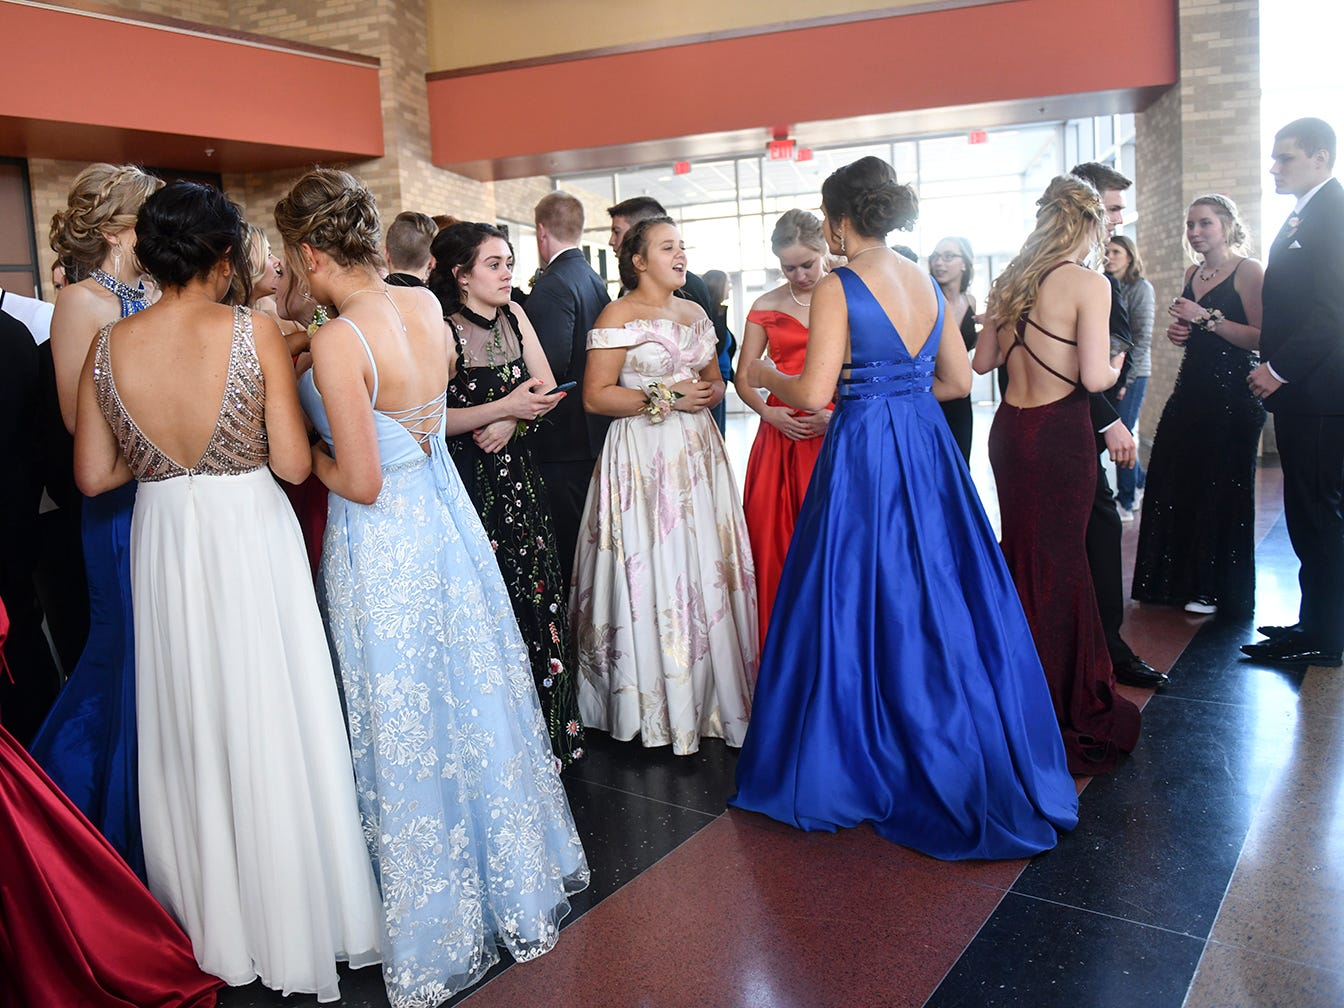 Promgoers line up before the start of prom grand march Saturday, April 13, at ROCORI High School in Cold Spring.